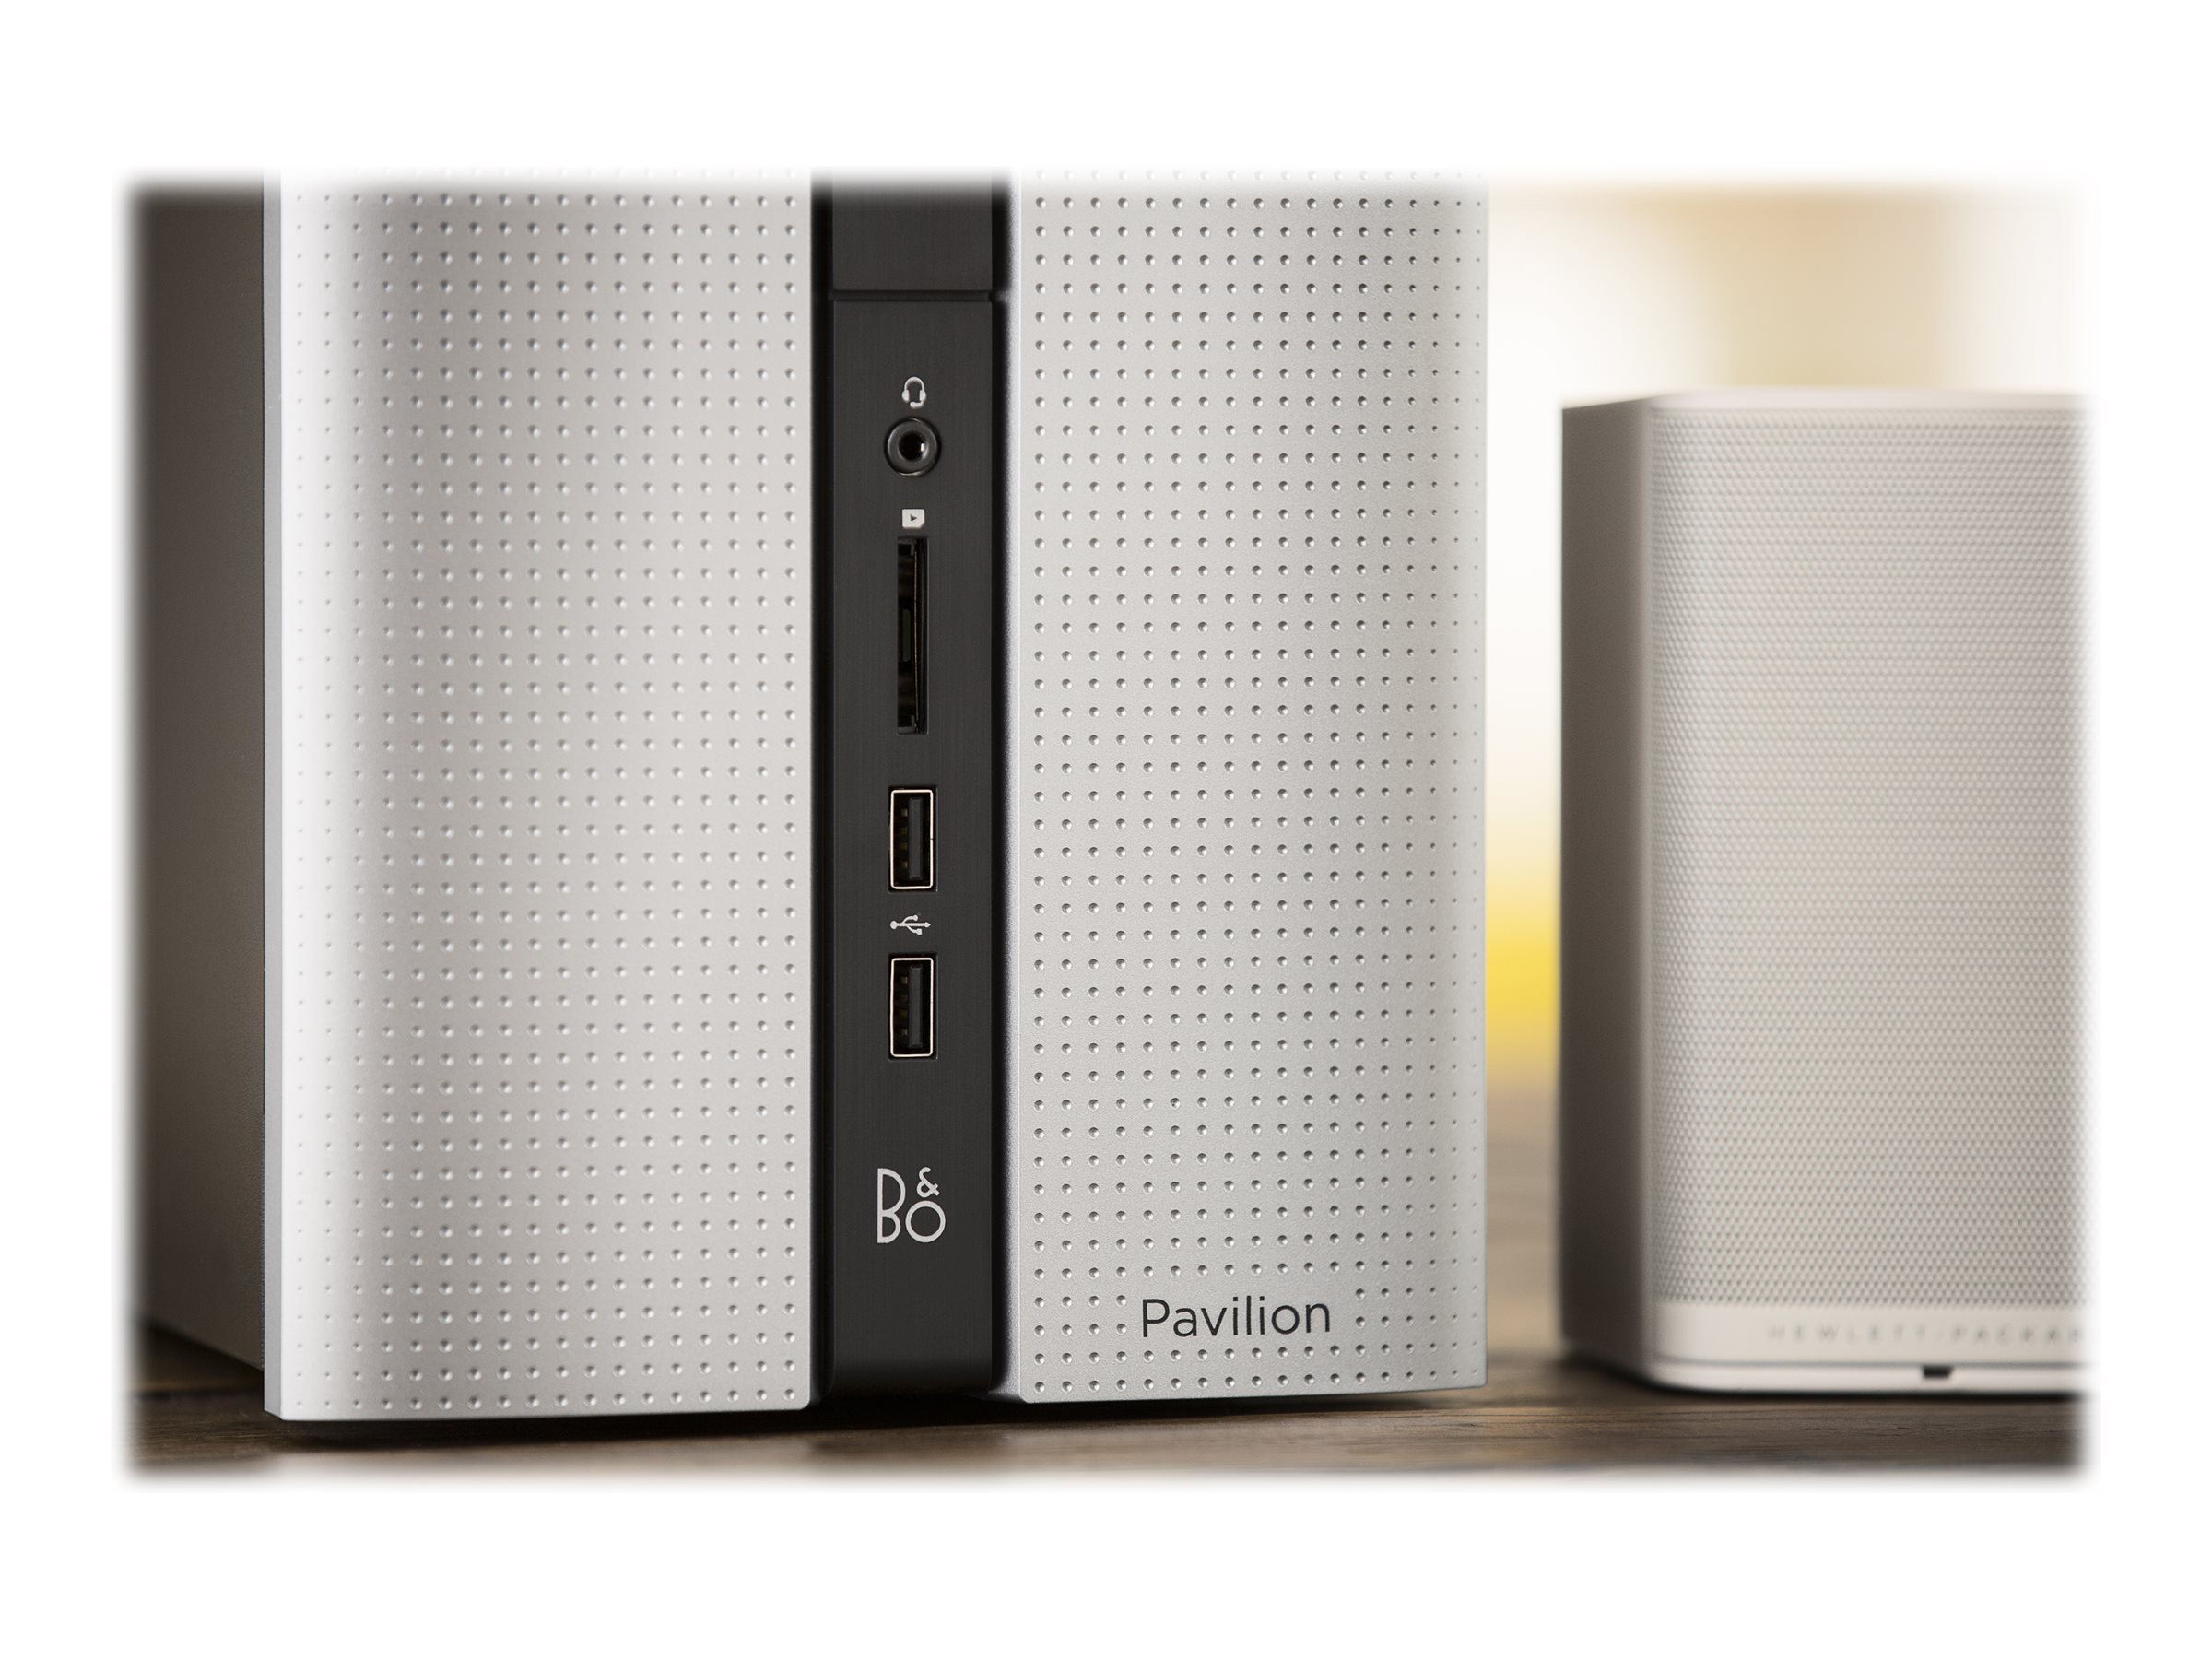 HP Pavilion 550-130 Desktop PC, M9Z86AA#ABA